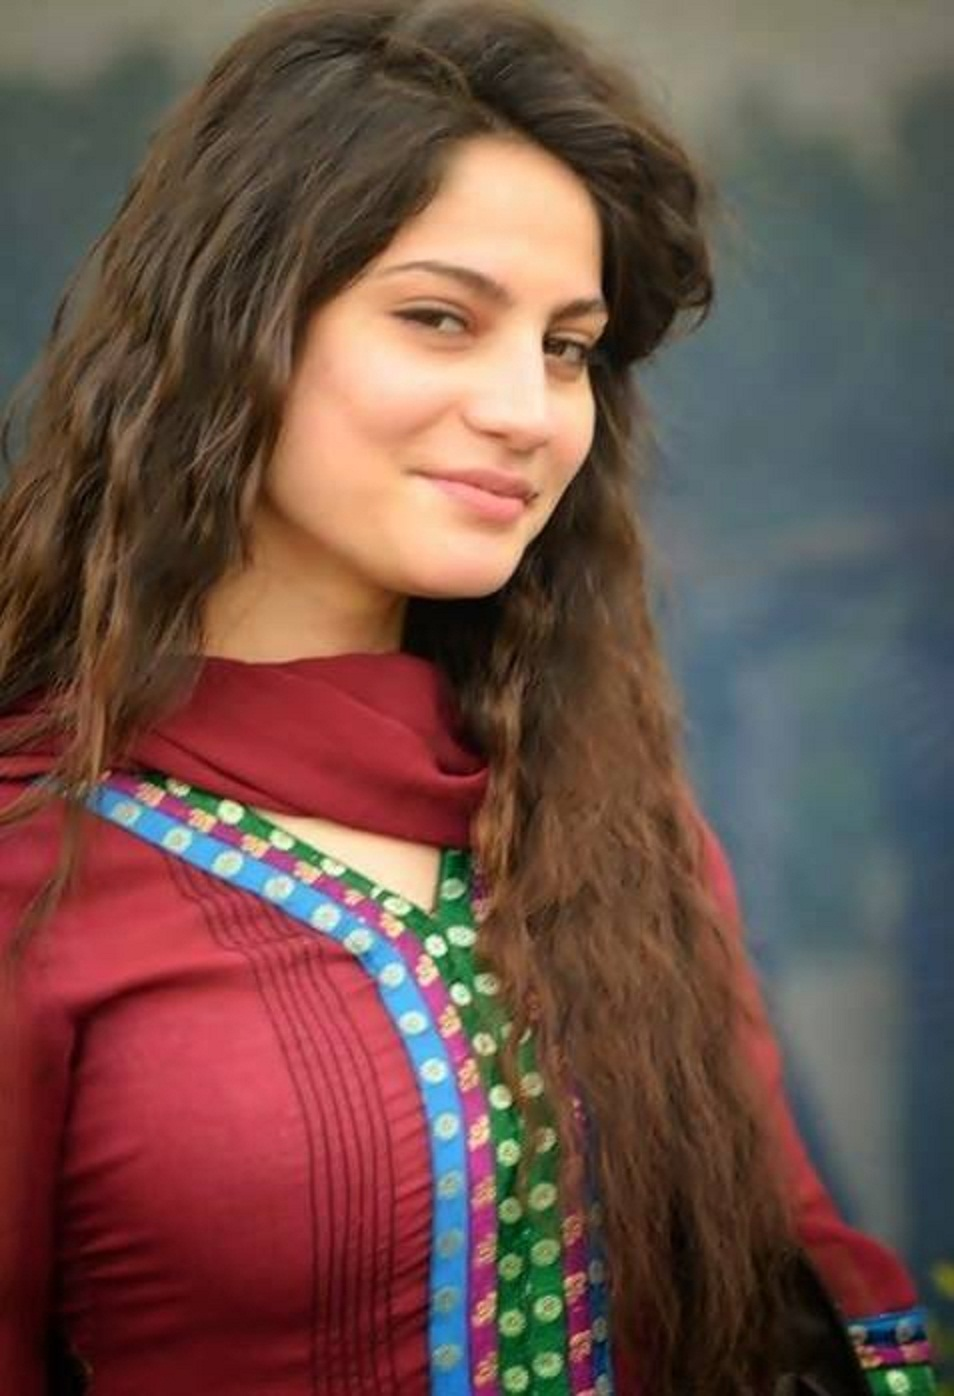 Free Stars Wallpaper: Beautiful Neelum Muneer HD Wallpaper